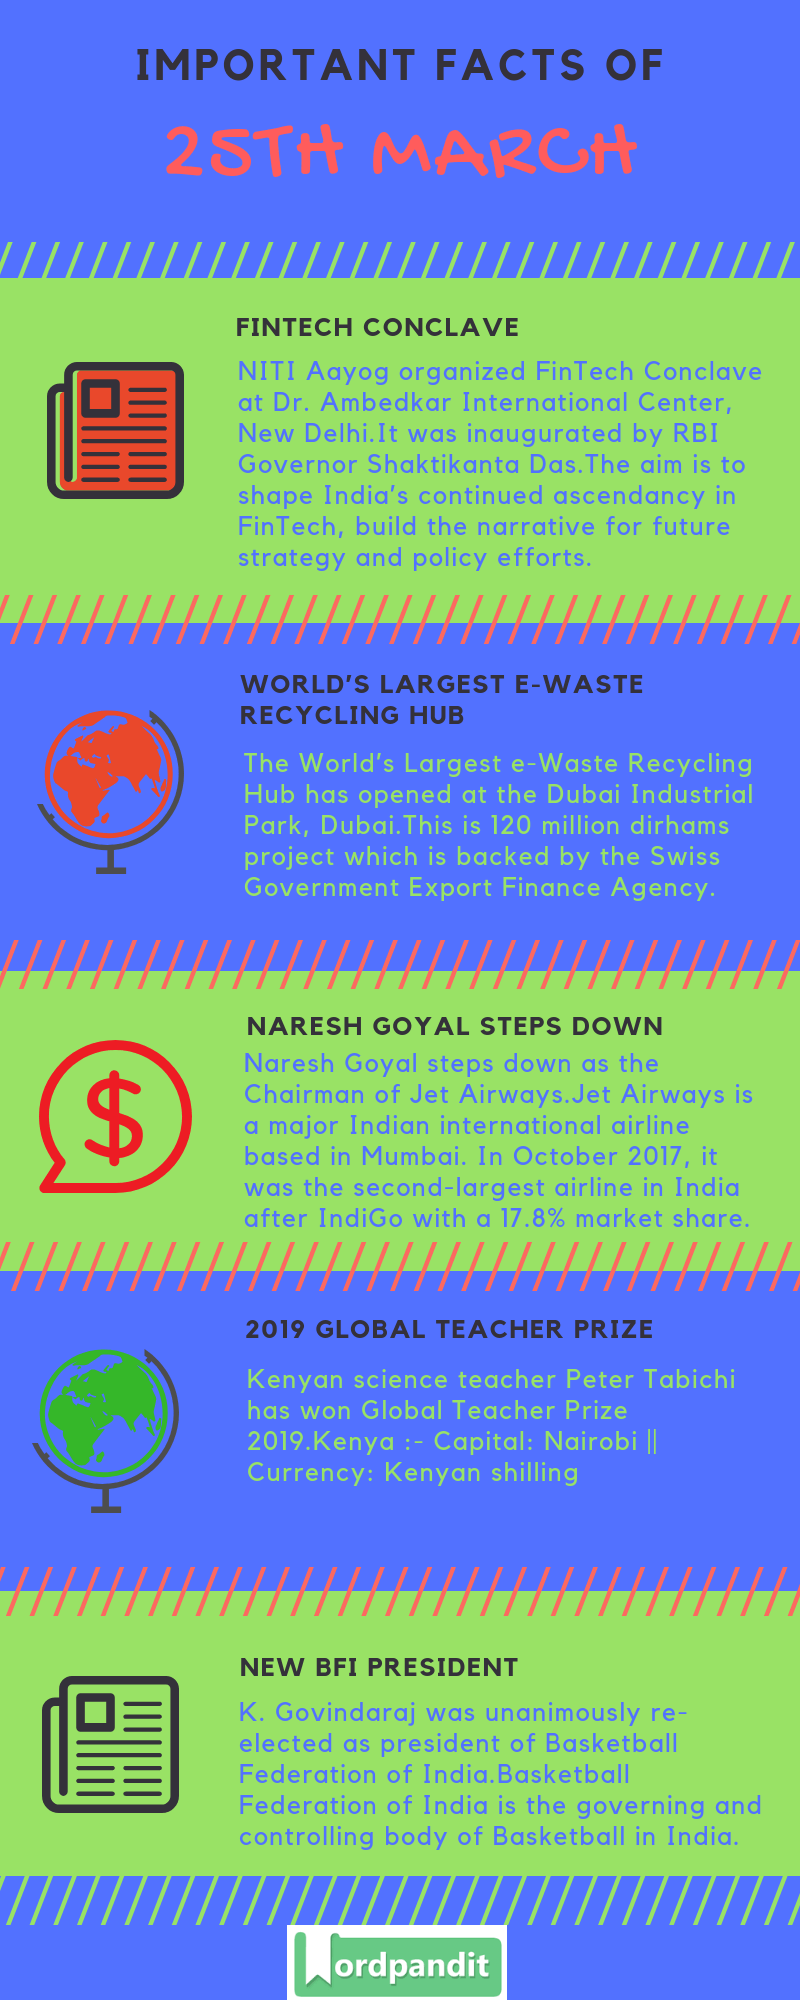 Daily Current Affairs 25 March 2019 Current Affairs Quiz 25 March 2019 Current Affairs Infographic